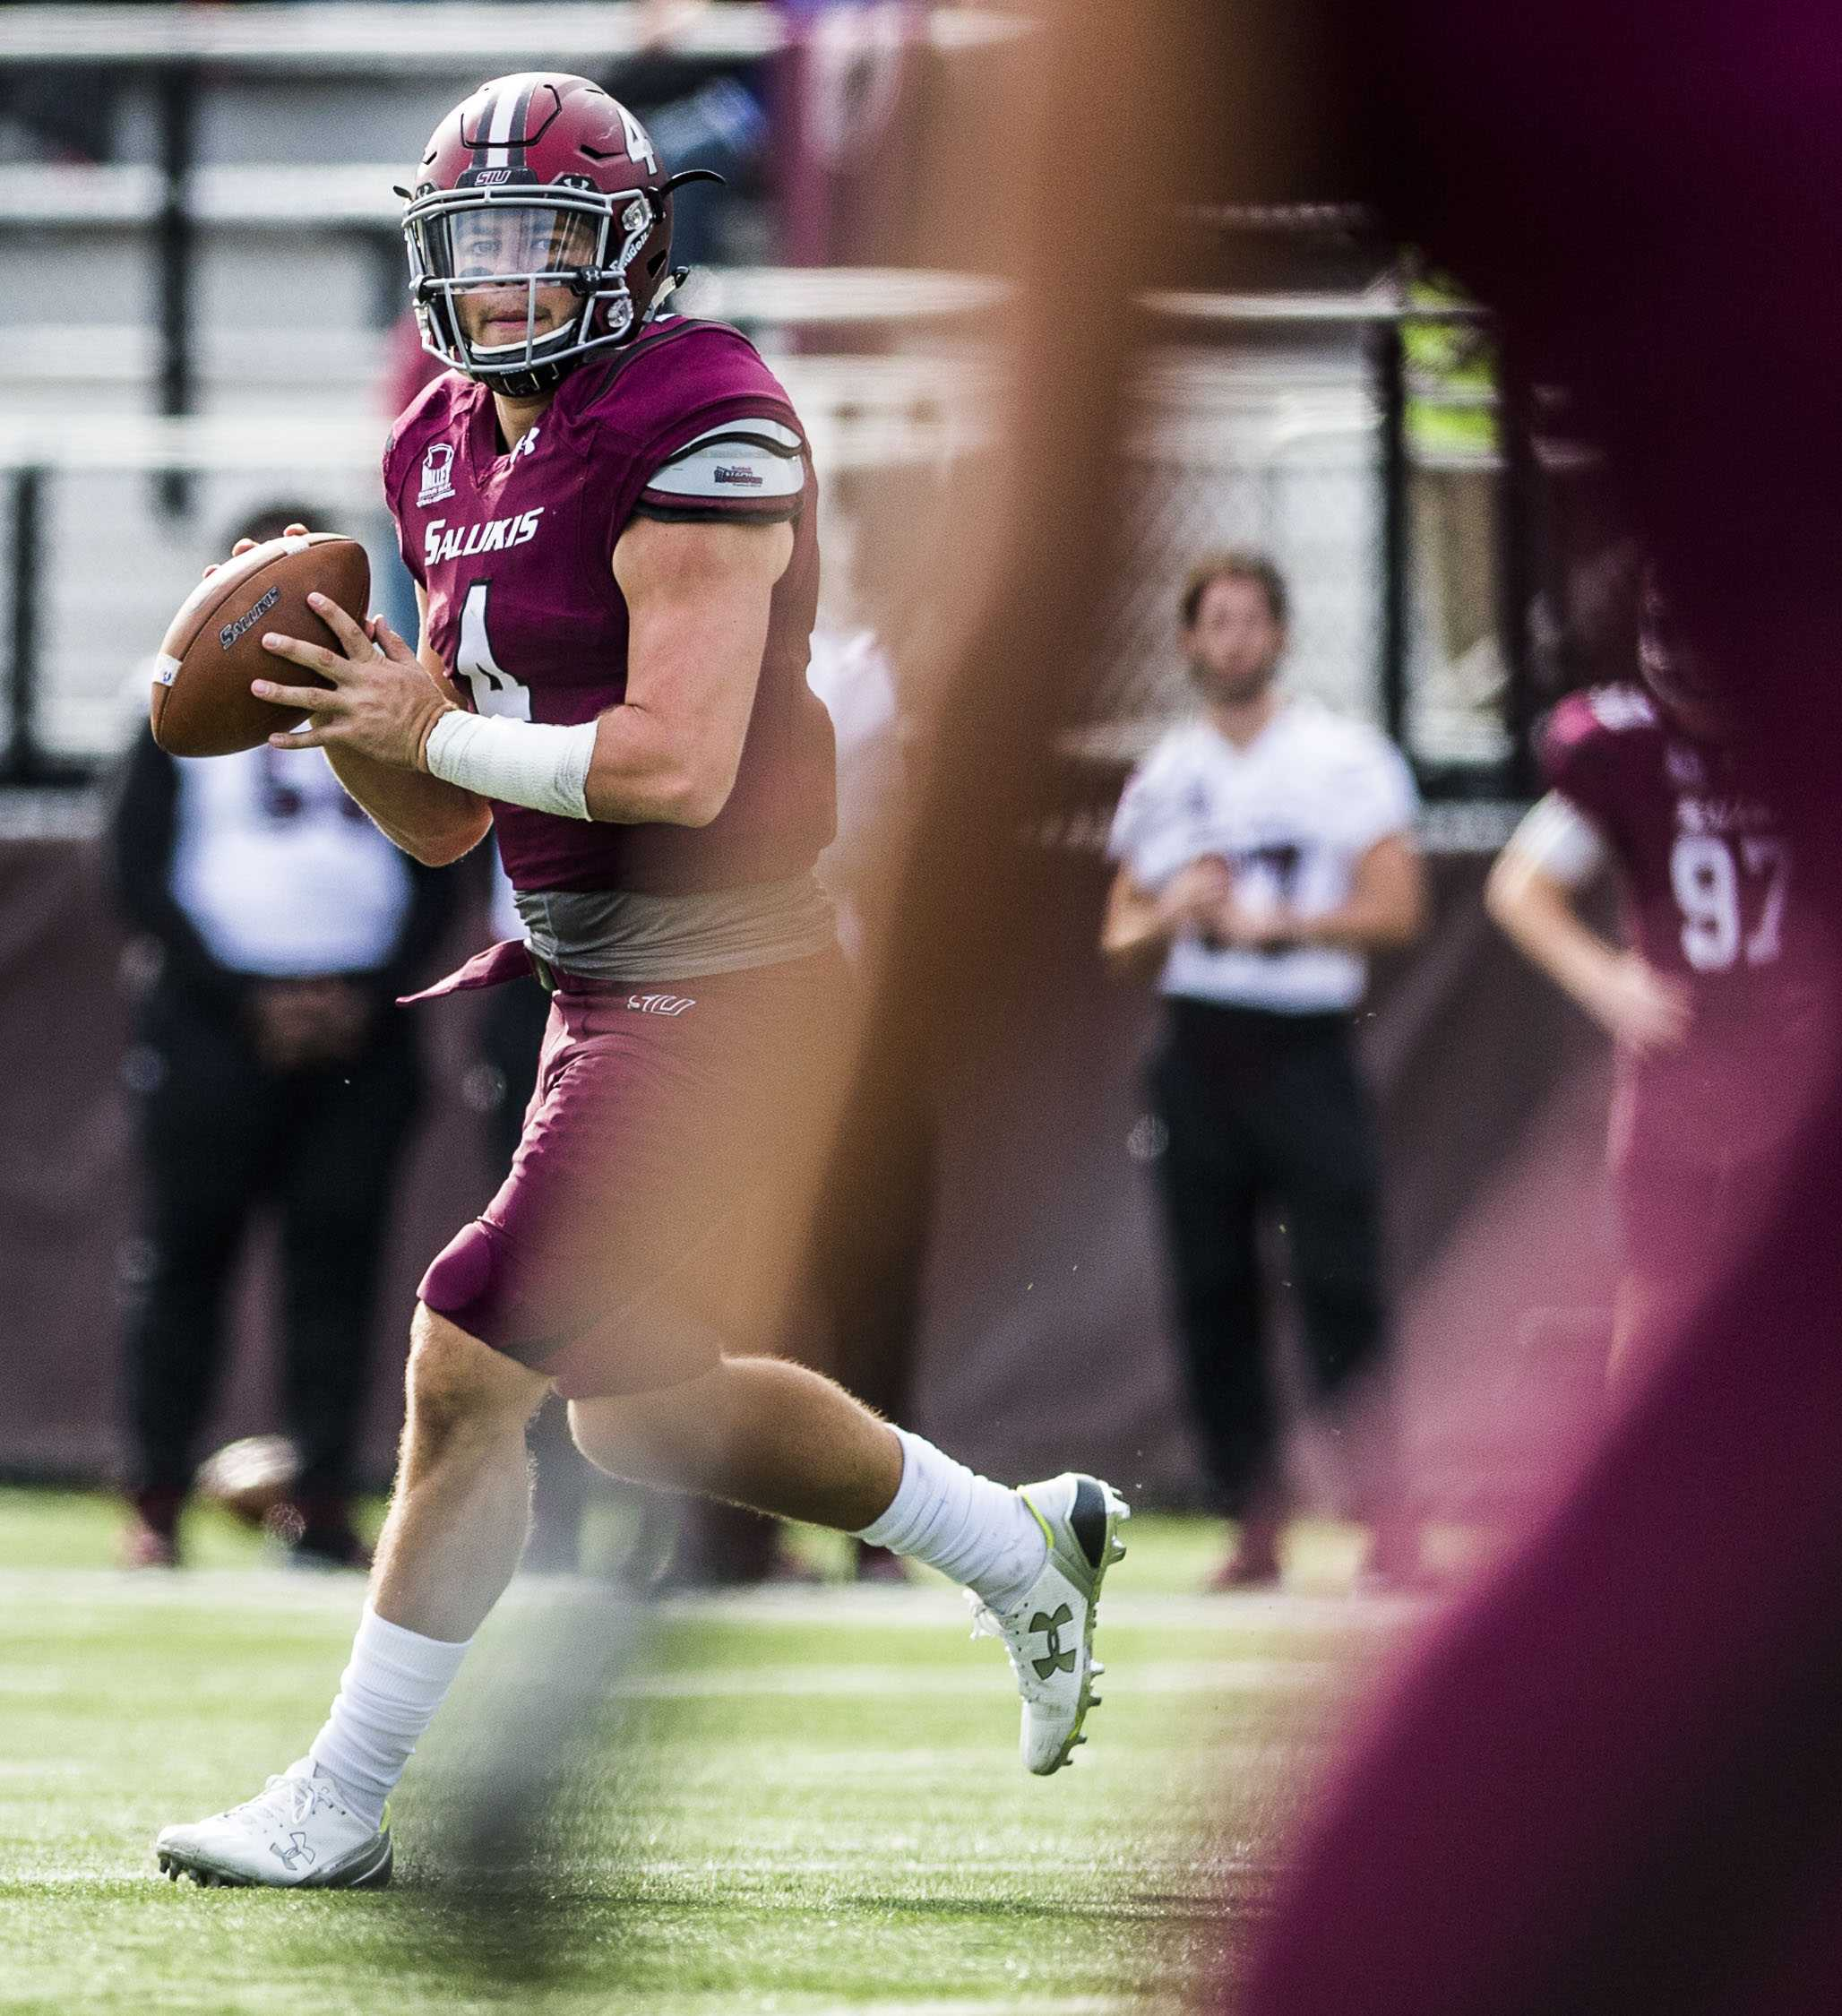 Sophomore quarterback Sam Straub (4) looks to make a pass Saturday, Nov. 5, 2016, during the Salukis' 35-28 win against the University of South Dakota Coyotes at Saluki Stadium. (Ryan Michalesko | @photosbylesko)